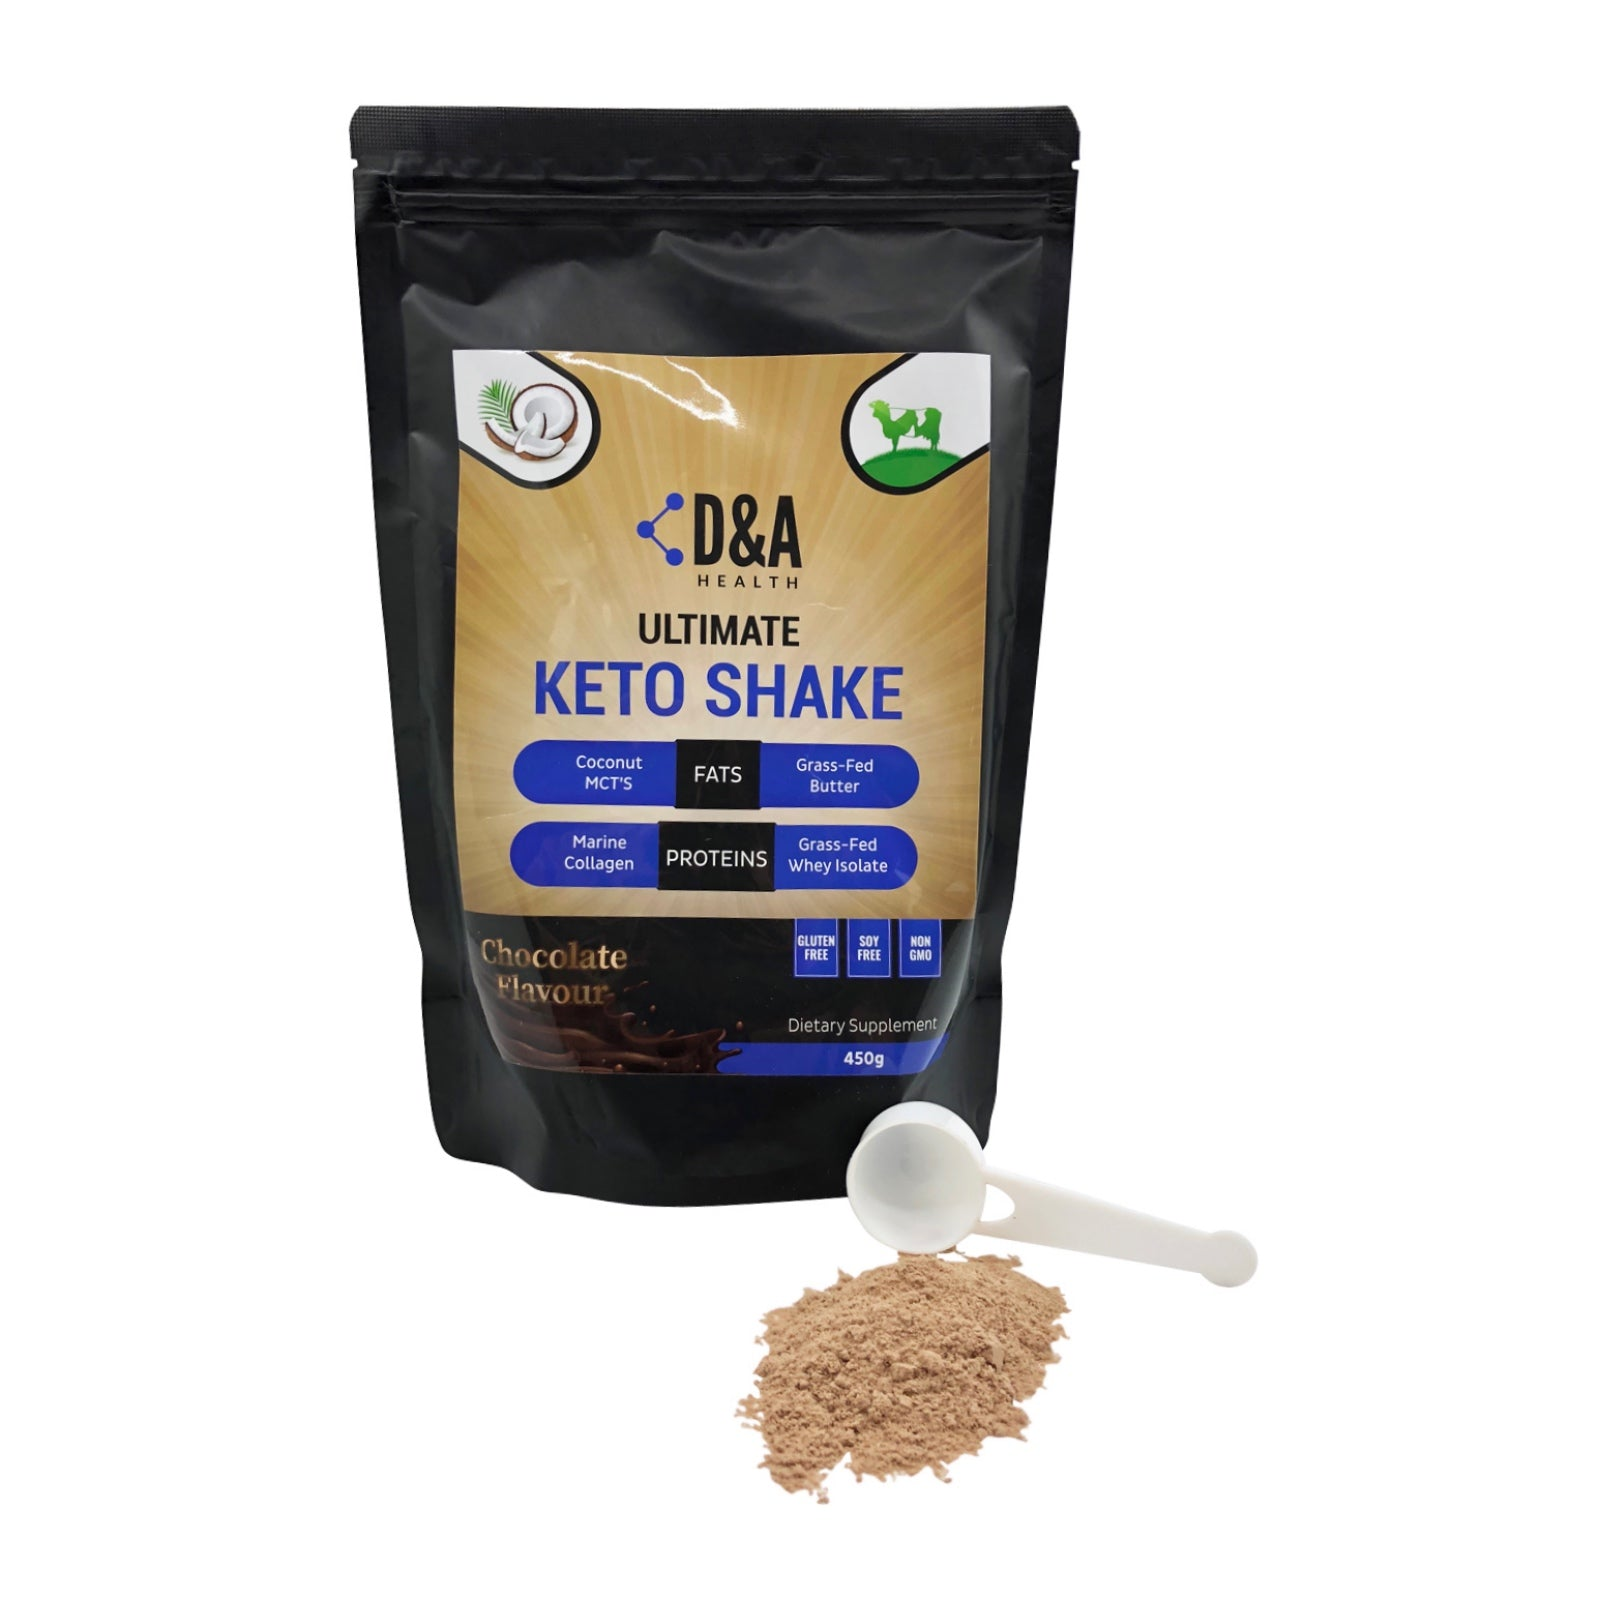 D&A HEALTH - ULTIMATE KETO SHAKE (450G) - CHOCOLATE